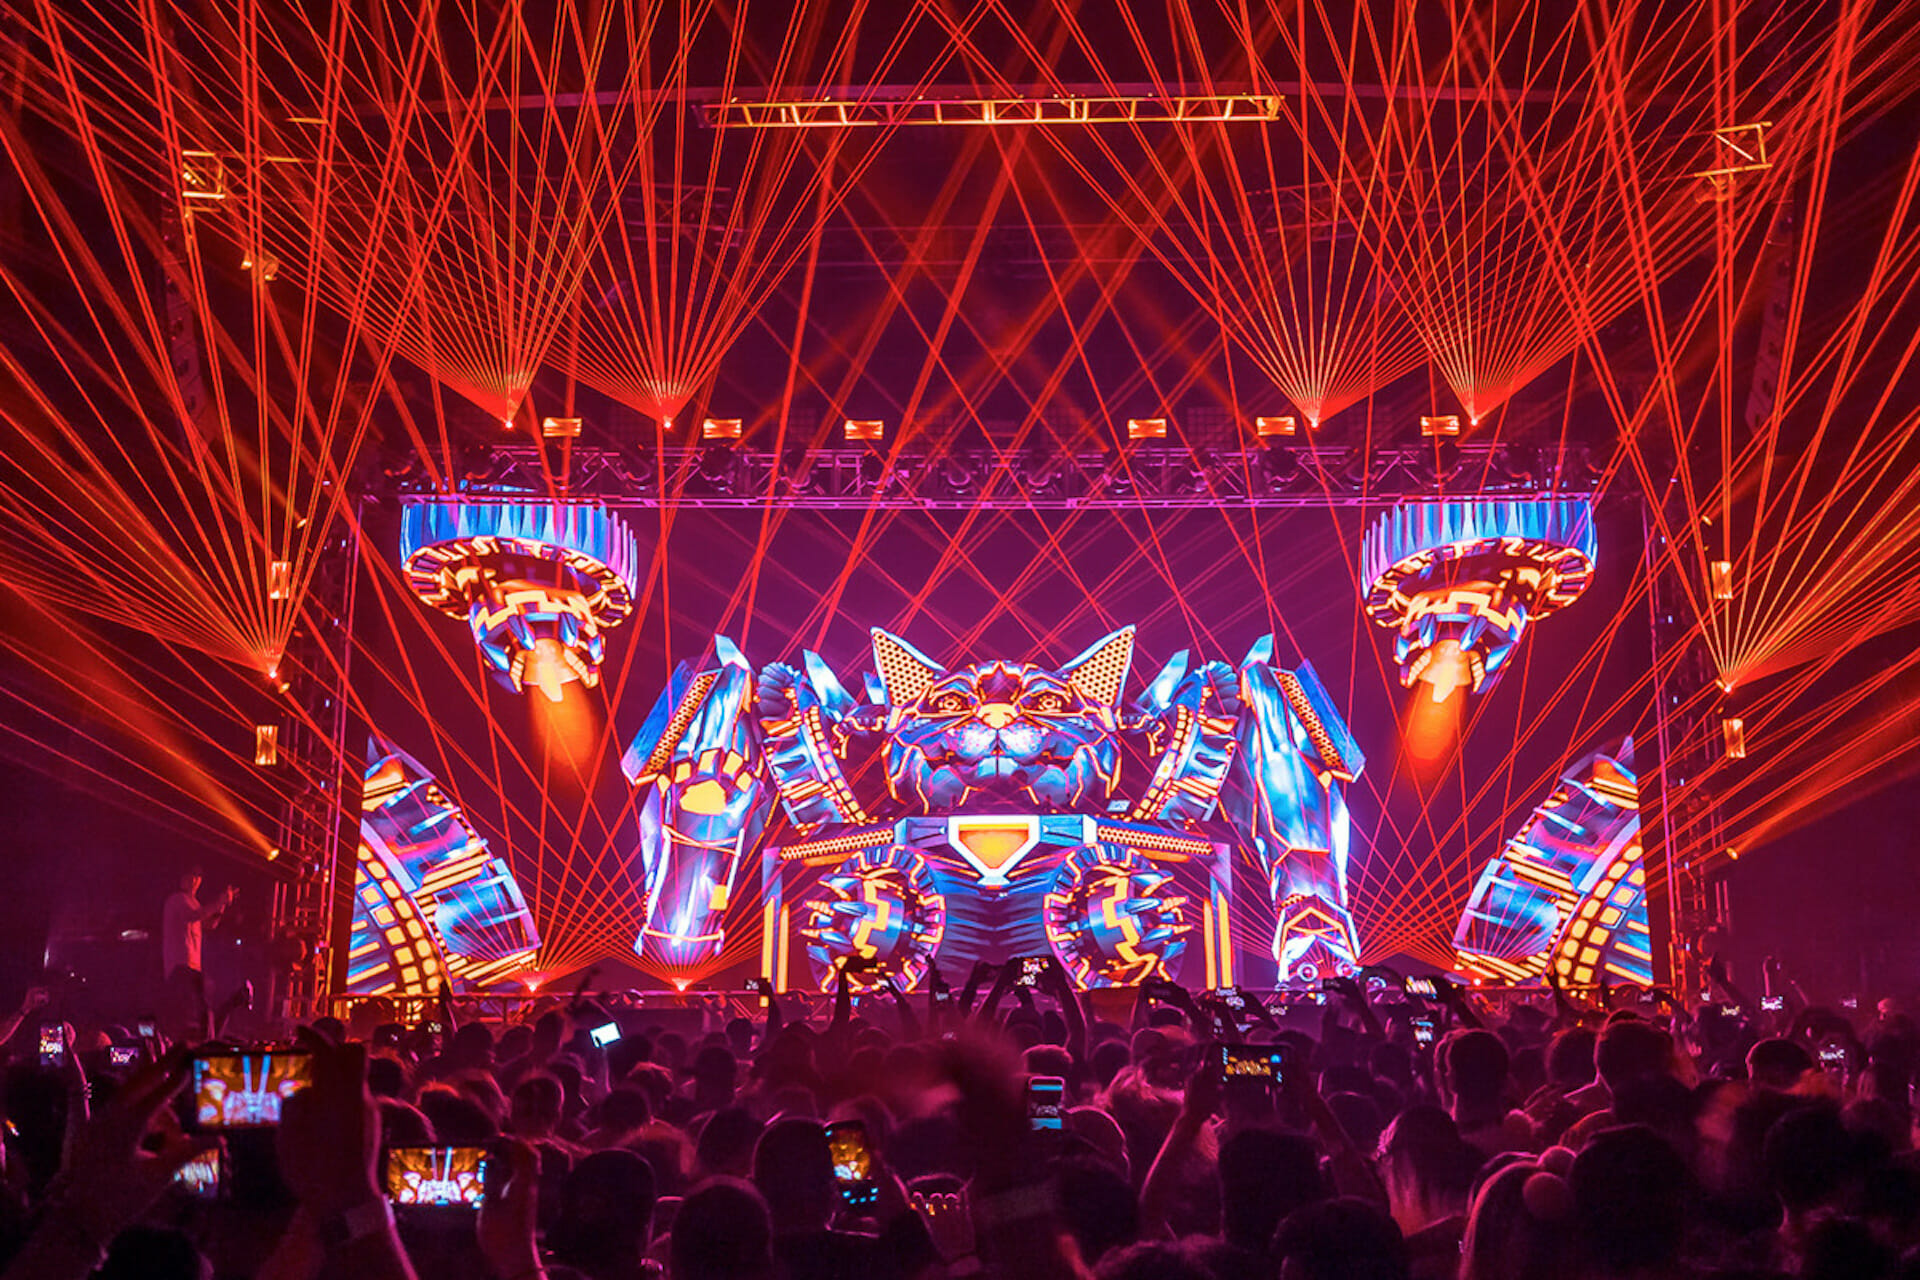 Good Morning Mix: Excision delivers unremitting bass in vigorous Lost Lands set [Watch]Ecision Lost Lands